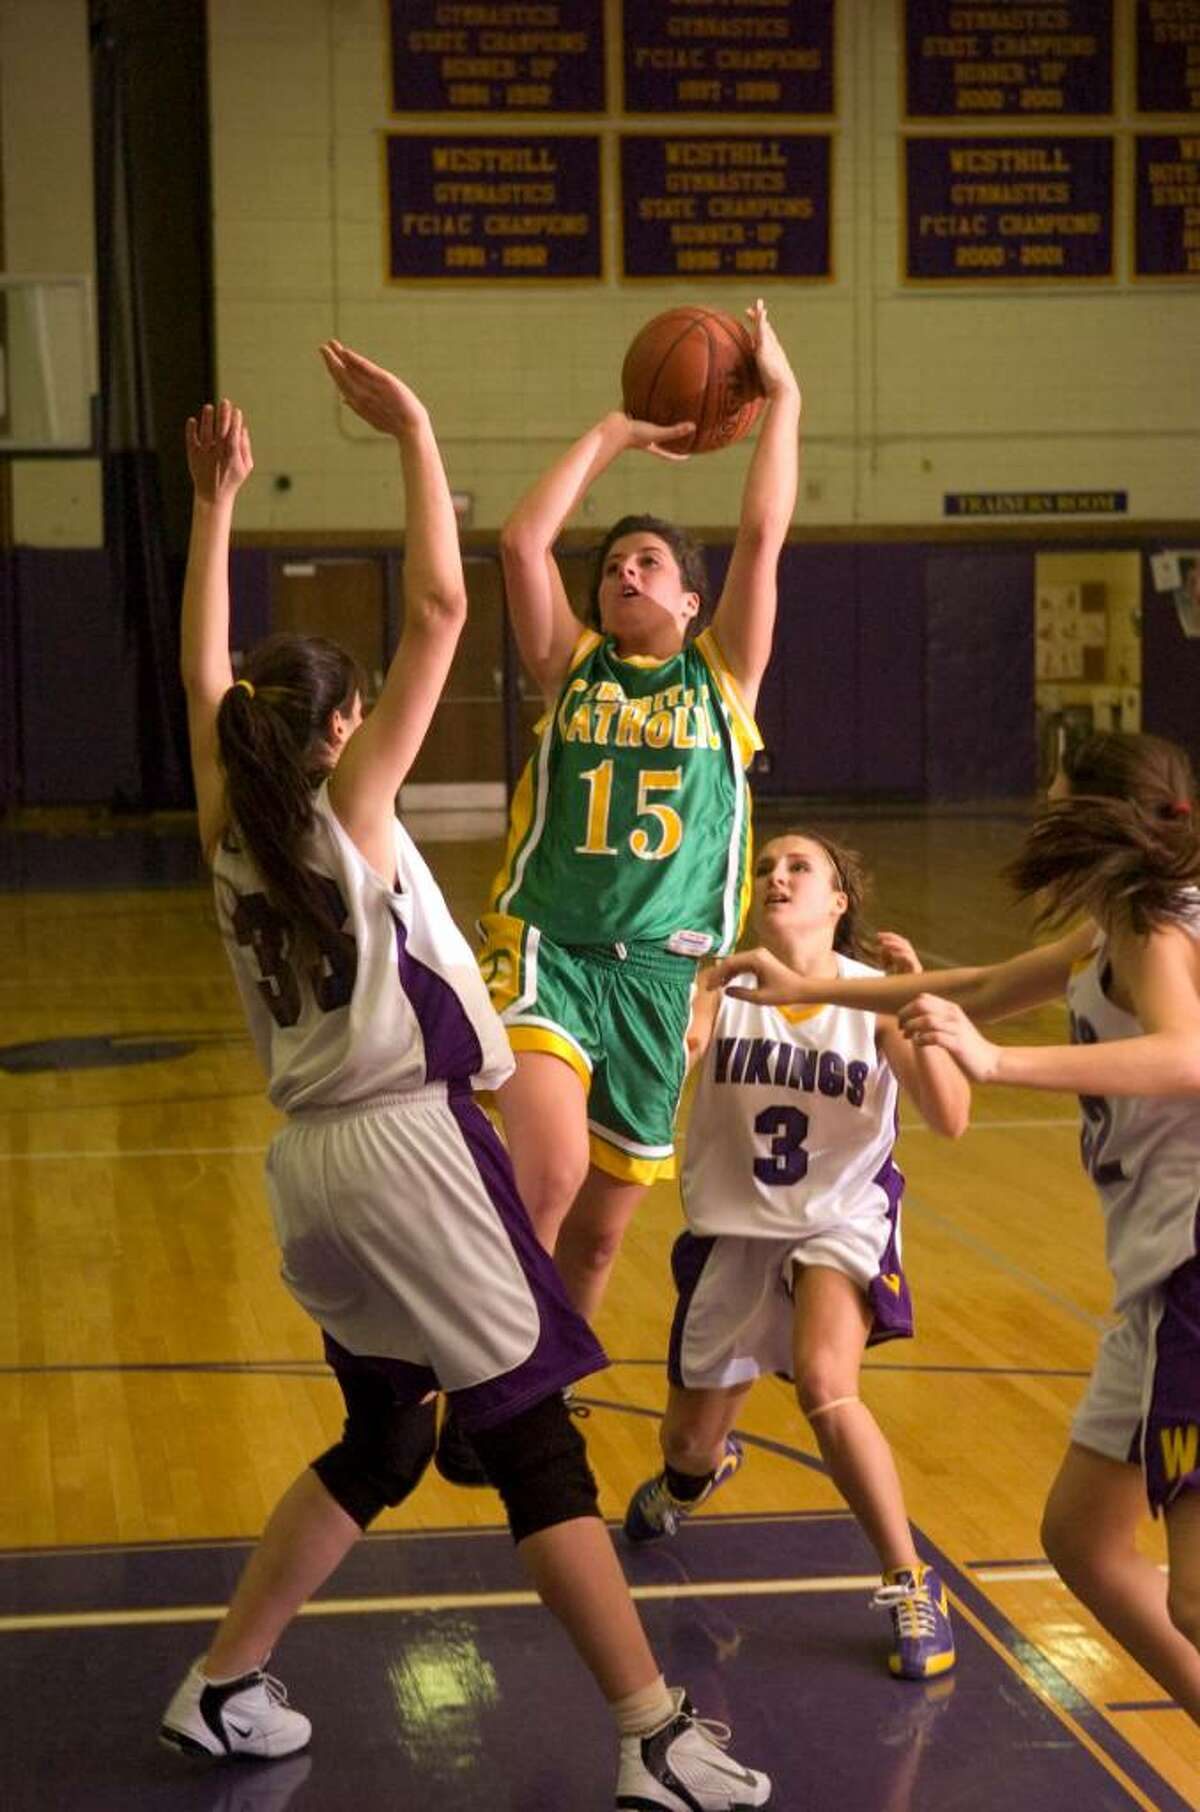 Trinity's Erin Sottosanti center, shoots during and FCIAC girls basketball game at Westhill High School in Stamford, Conn. on Tuesday, Jan. 12, 2010.